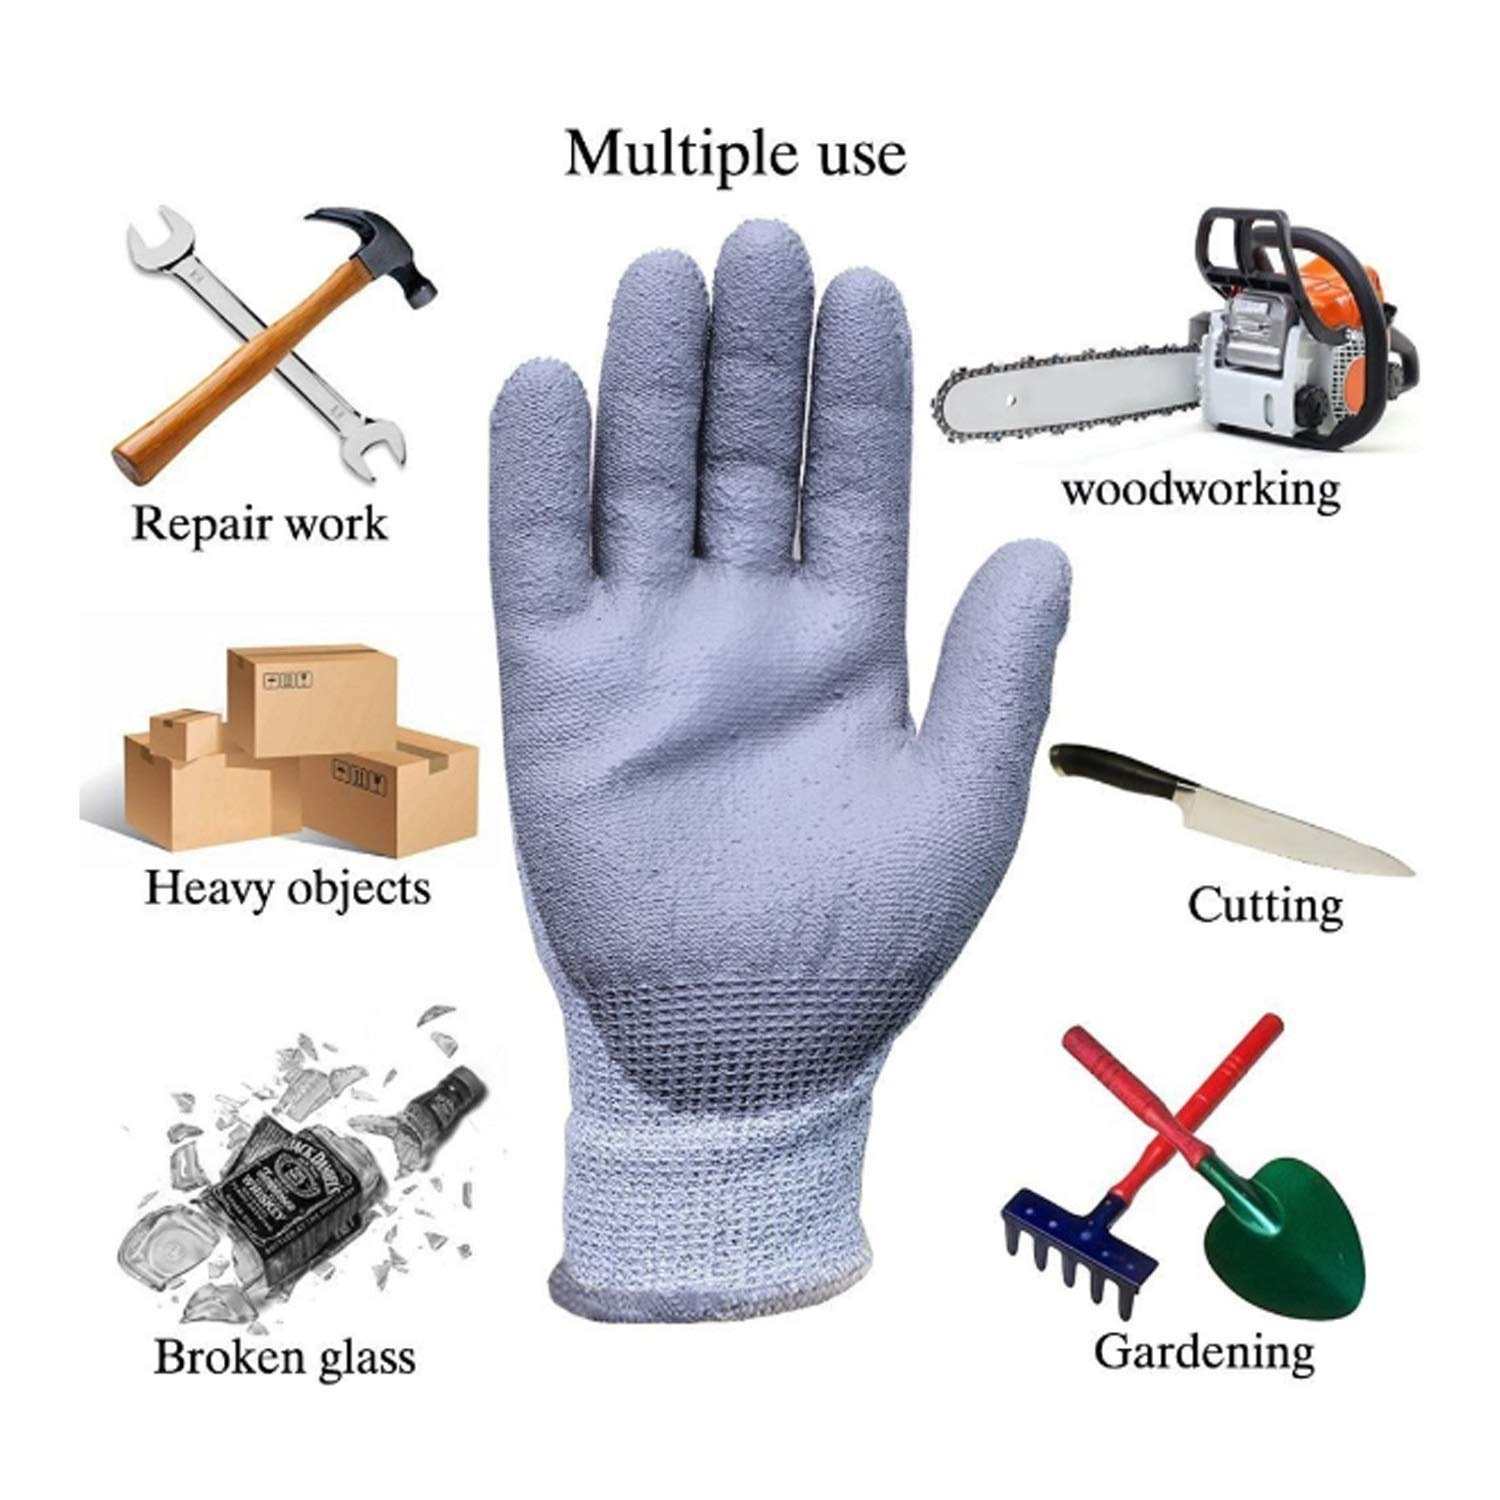 ACAO Textured Rubber Nitrile Palm Dipped/Coated for Construction, Men's X-Large Home Gardening (Color : 2 Pairs, Size : L-9(9.45 in)) by ACAO-Glove (Image #2)